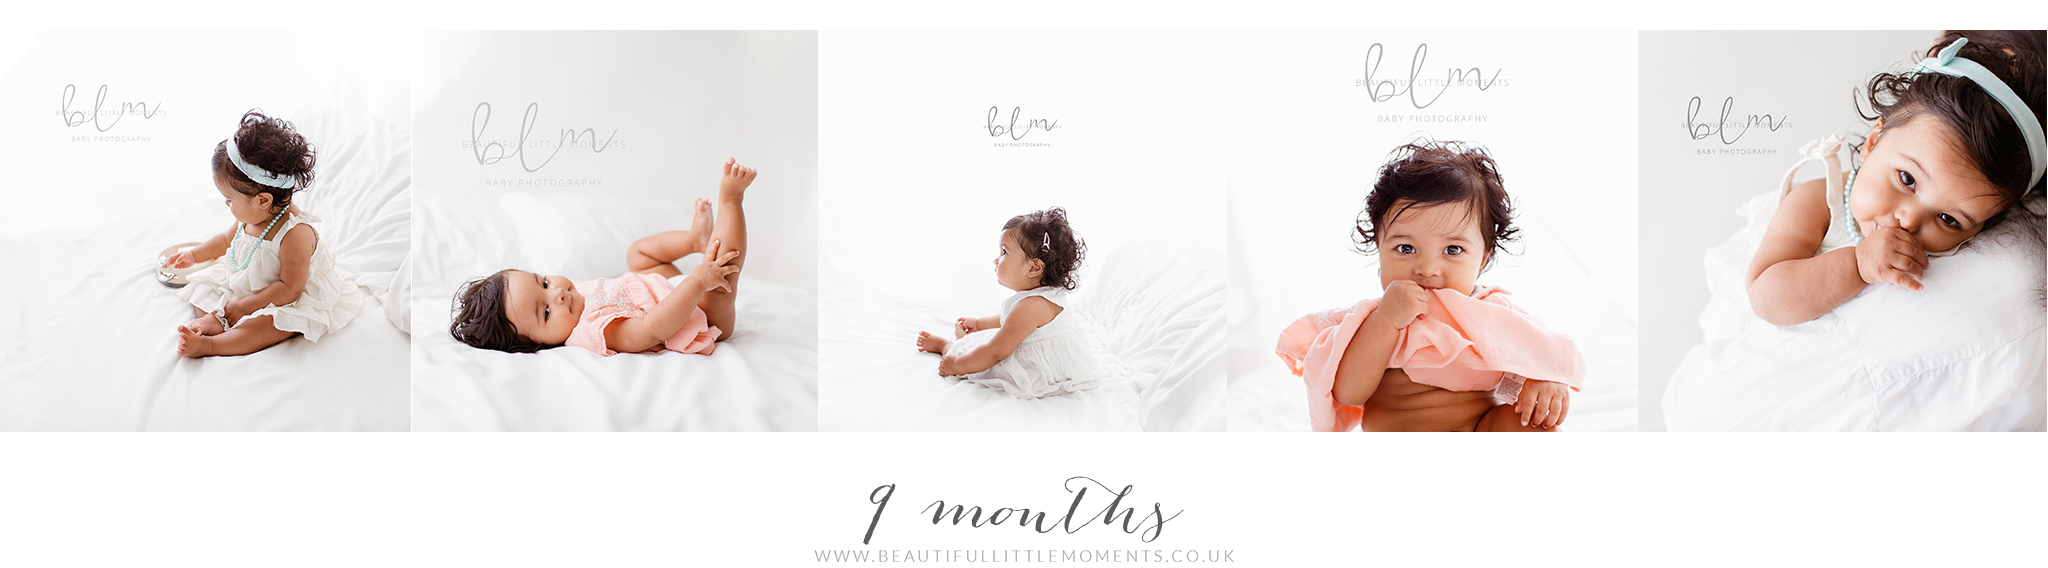 Baby Photography 9 months